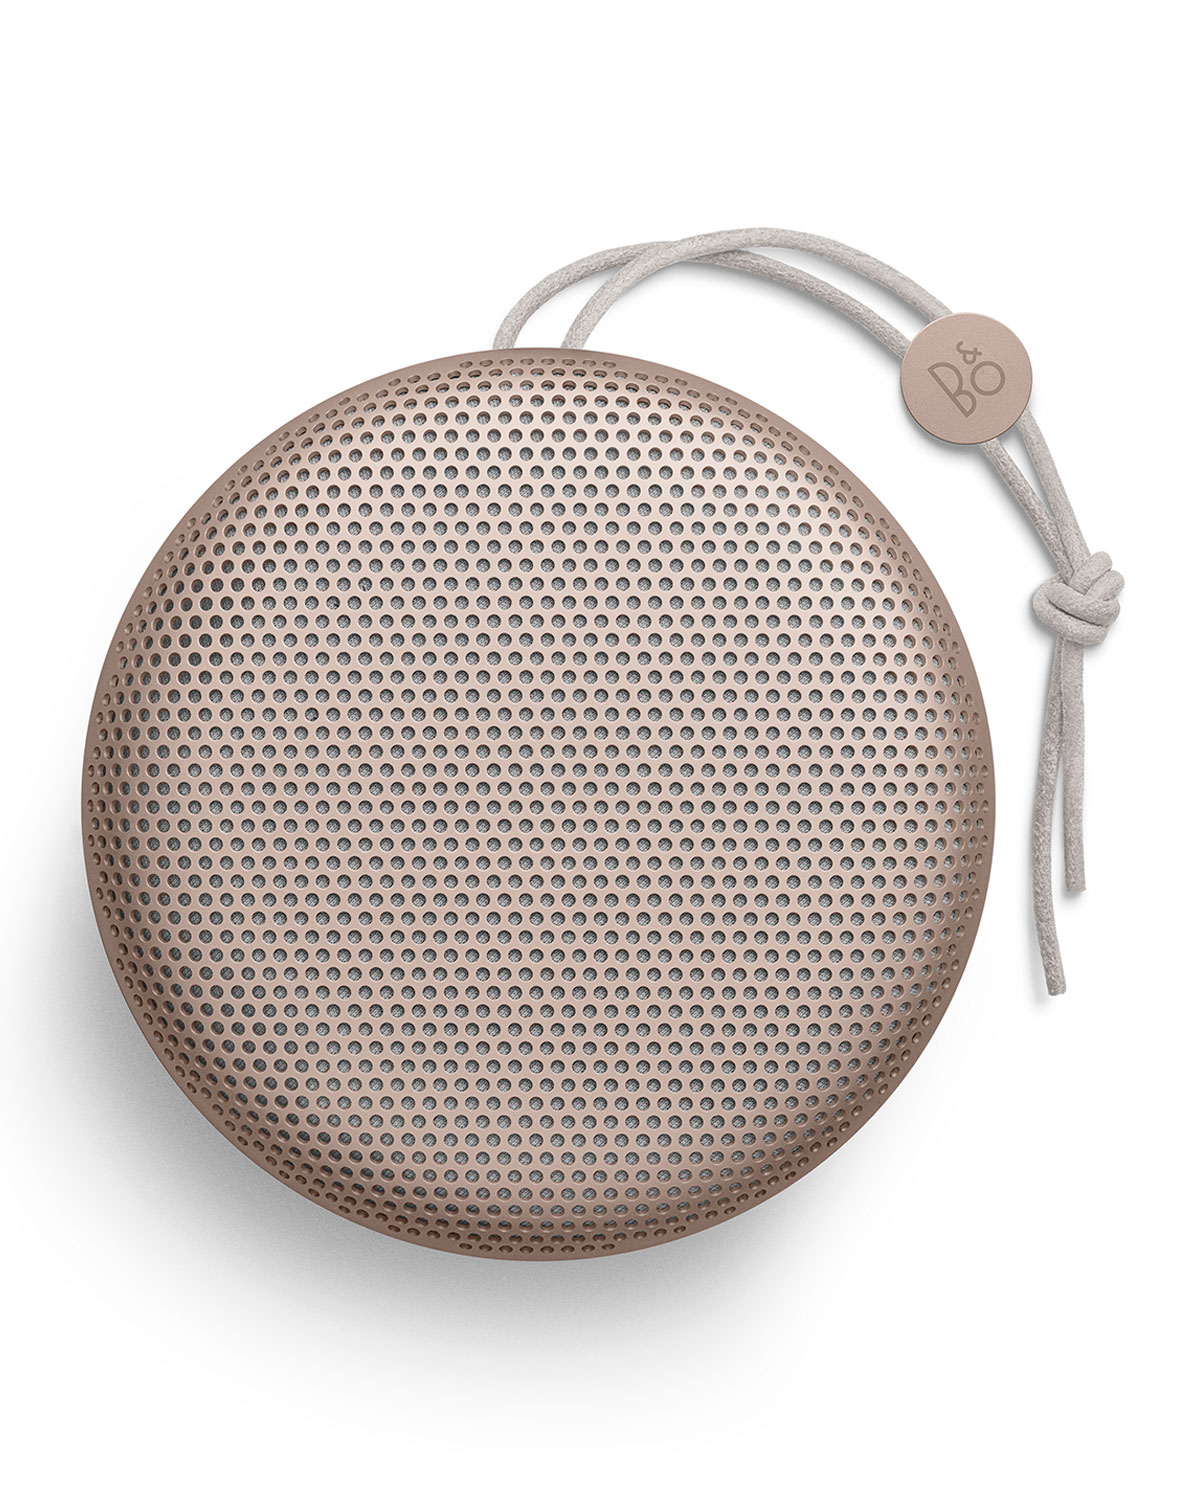 BANG & OLUFSEN Beoplay A1 Speaker in Blue